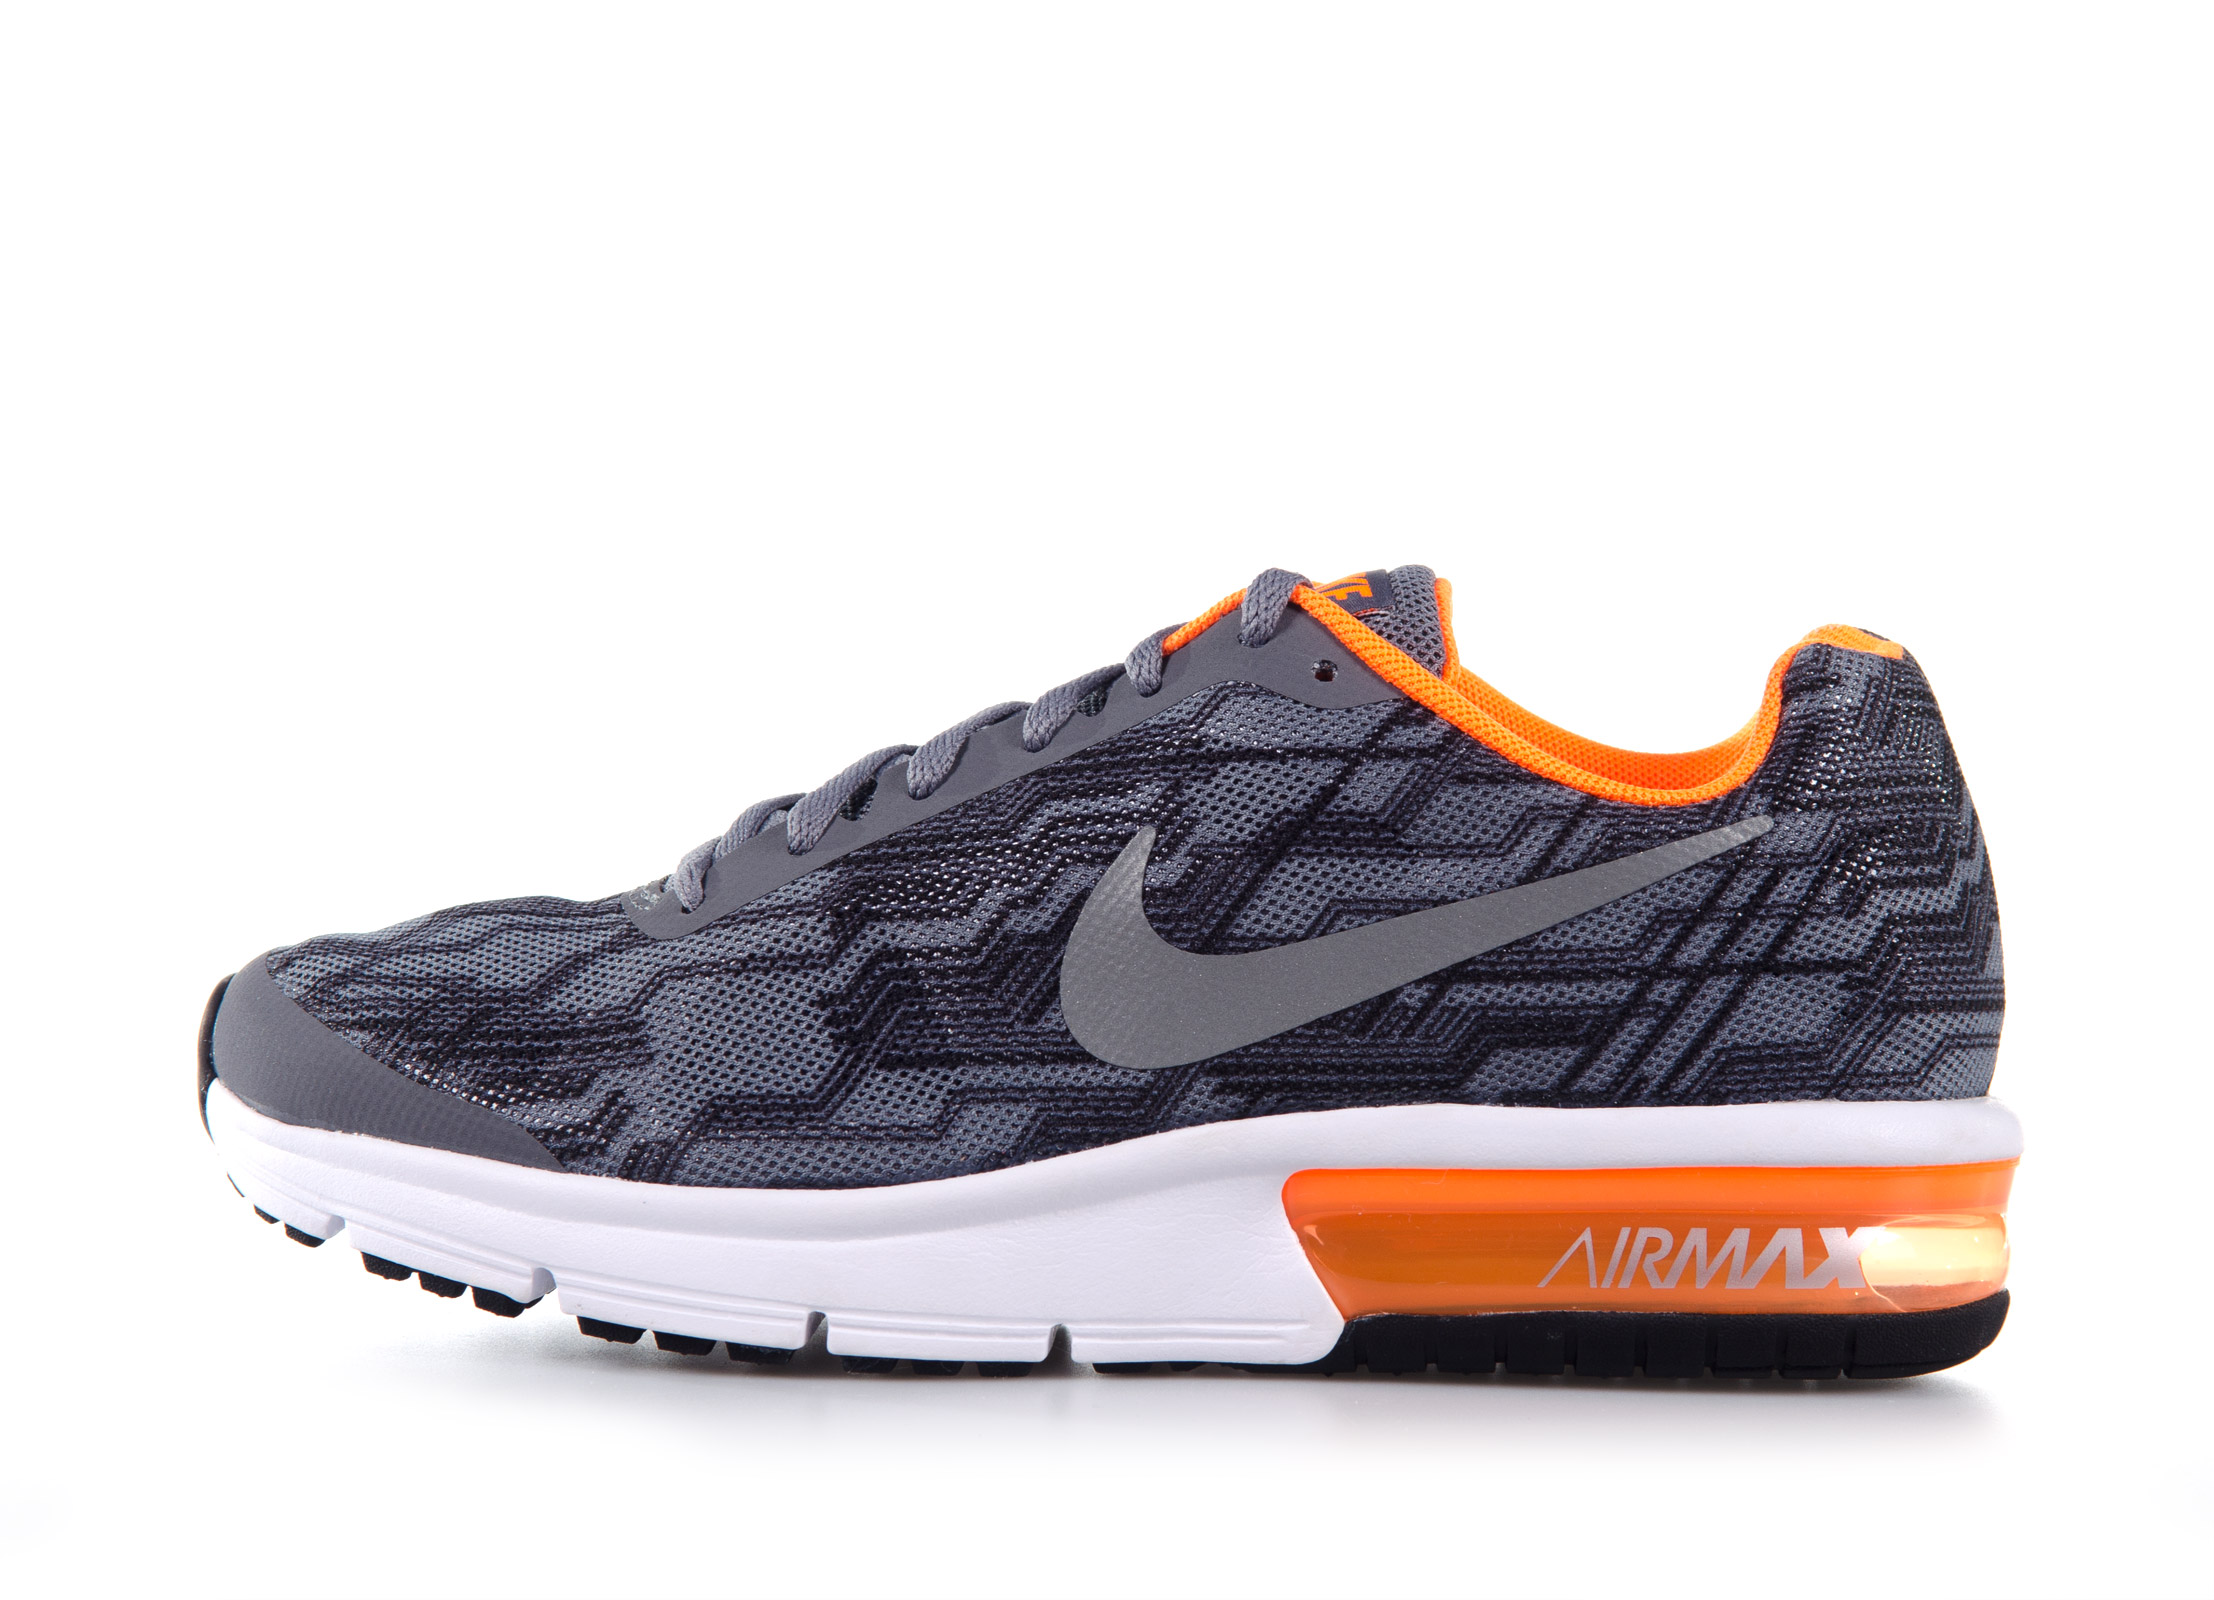 NIKE AIR MAX SEQUENT 820329-001 Ανθρακί